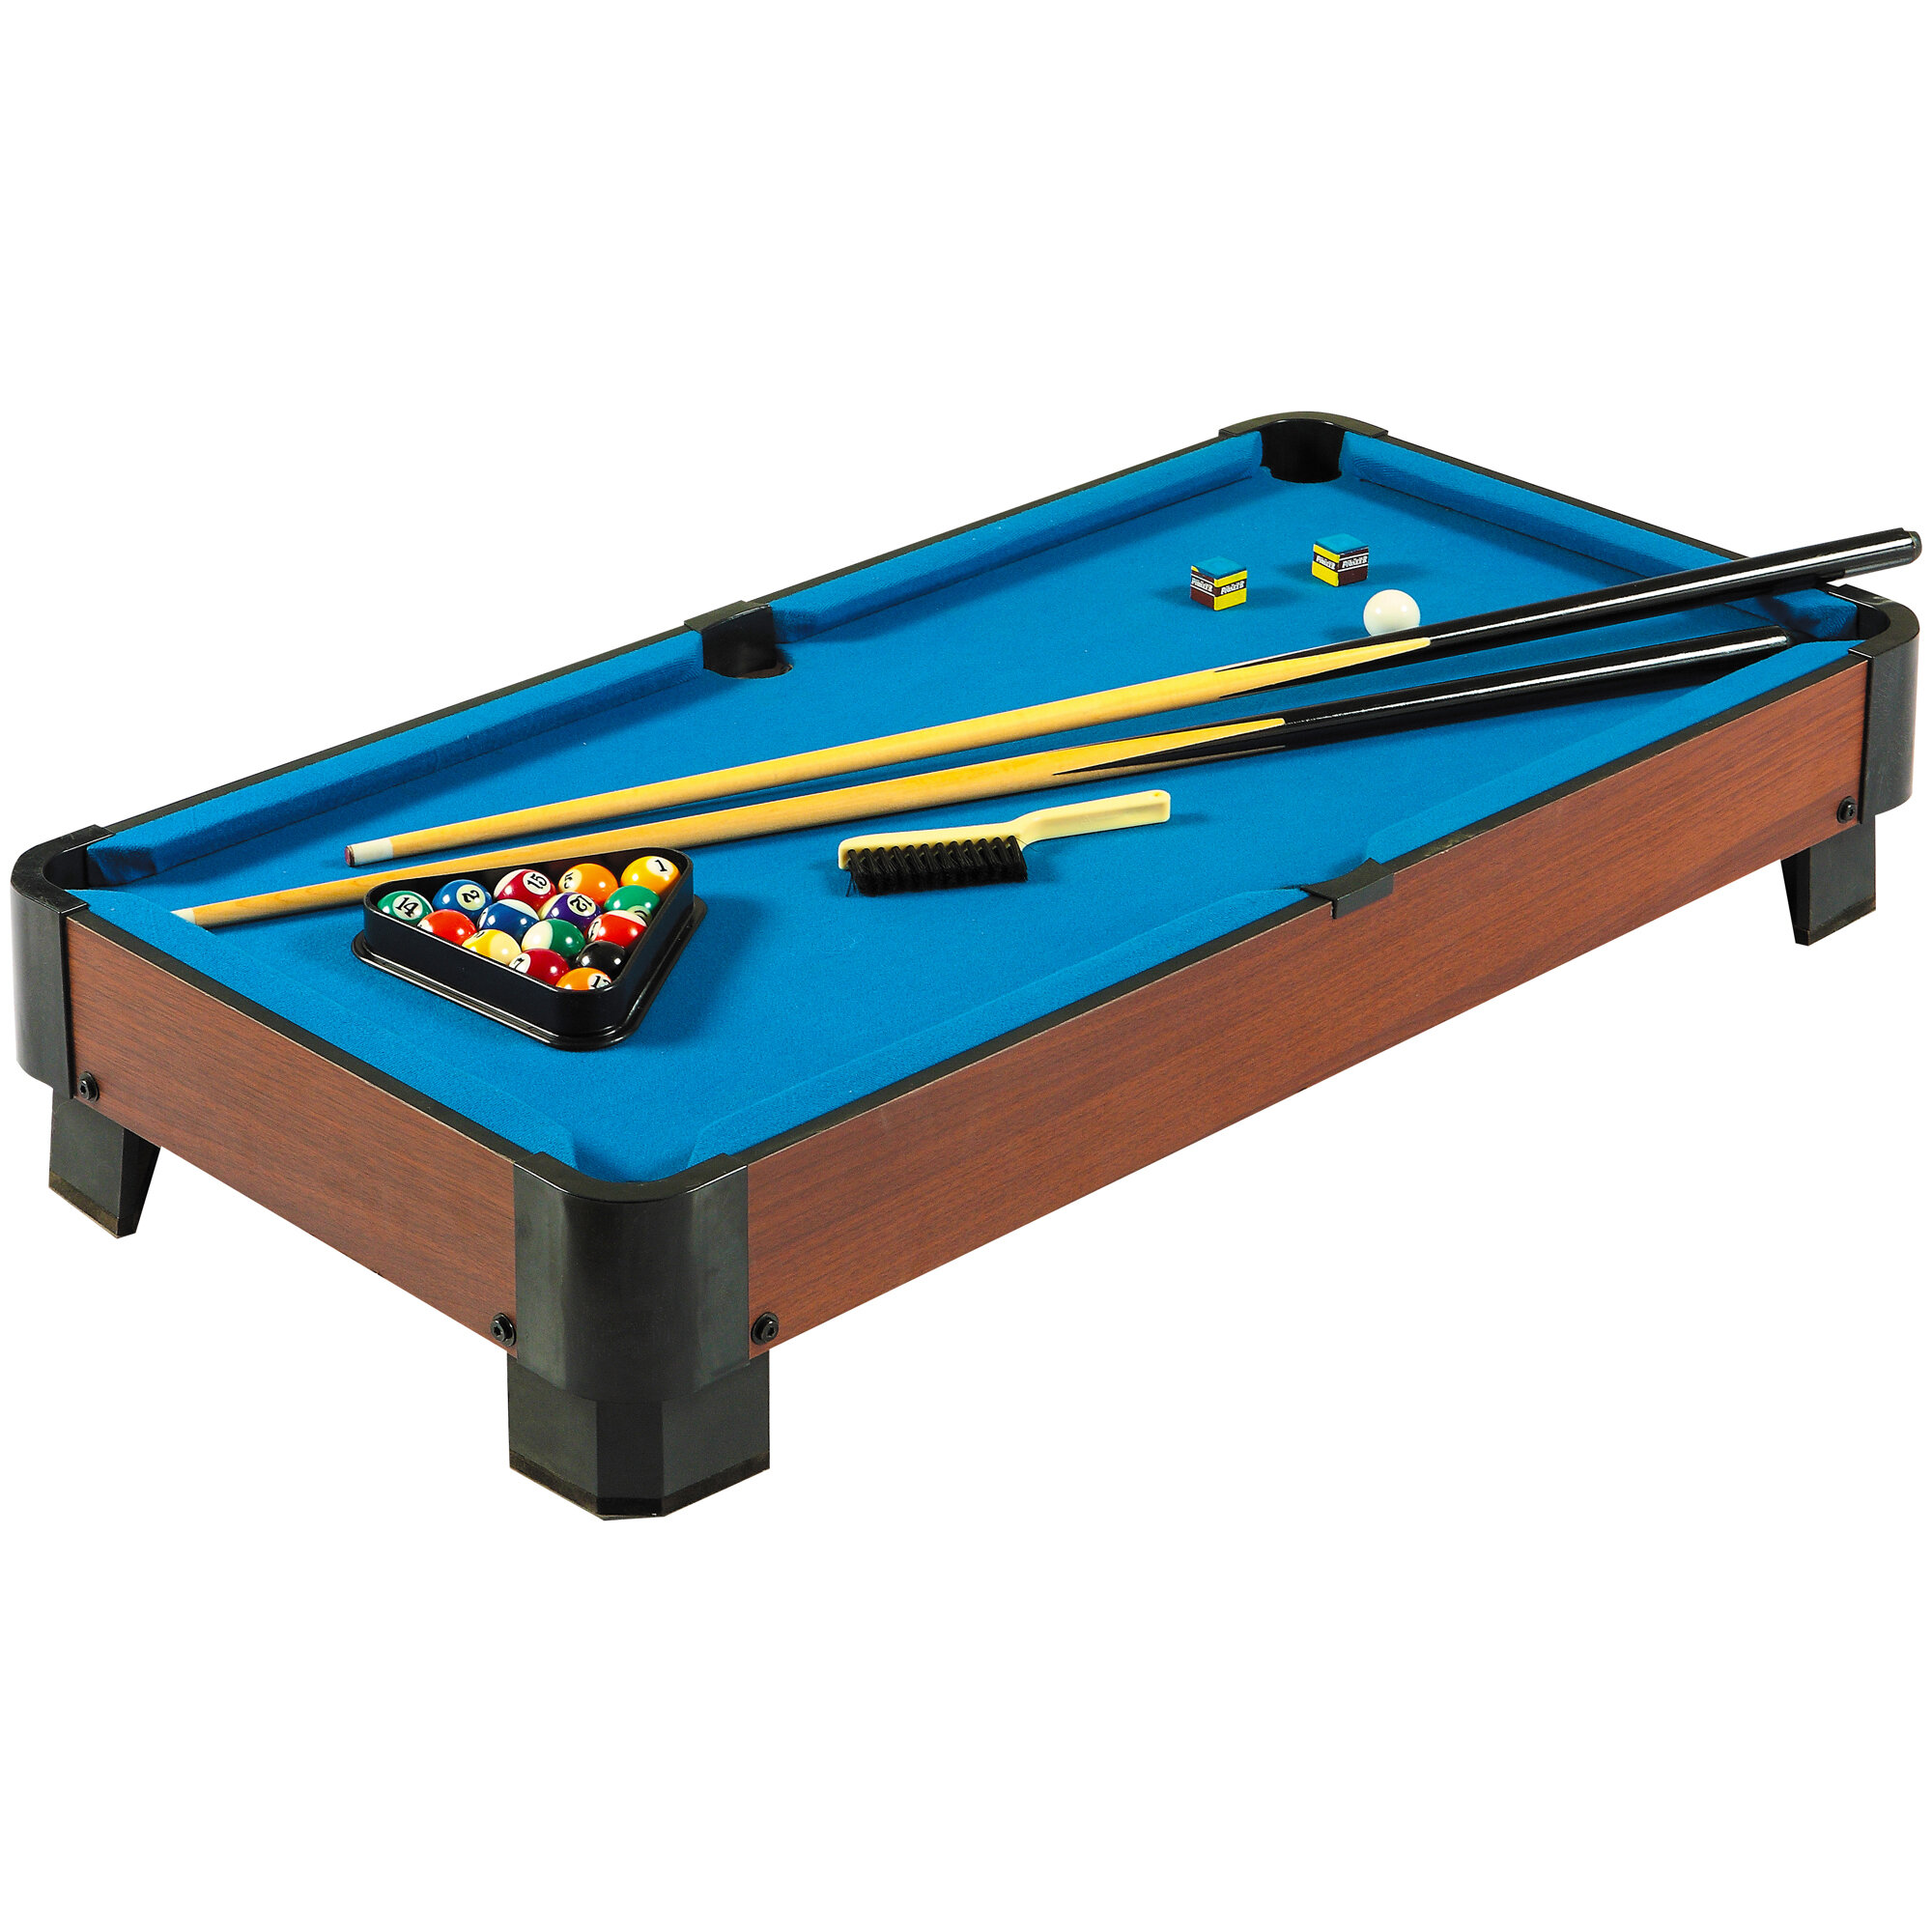 3-Place Black Extreme Portable Pool//Billiards Cue Stick Table Top Holder